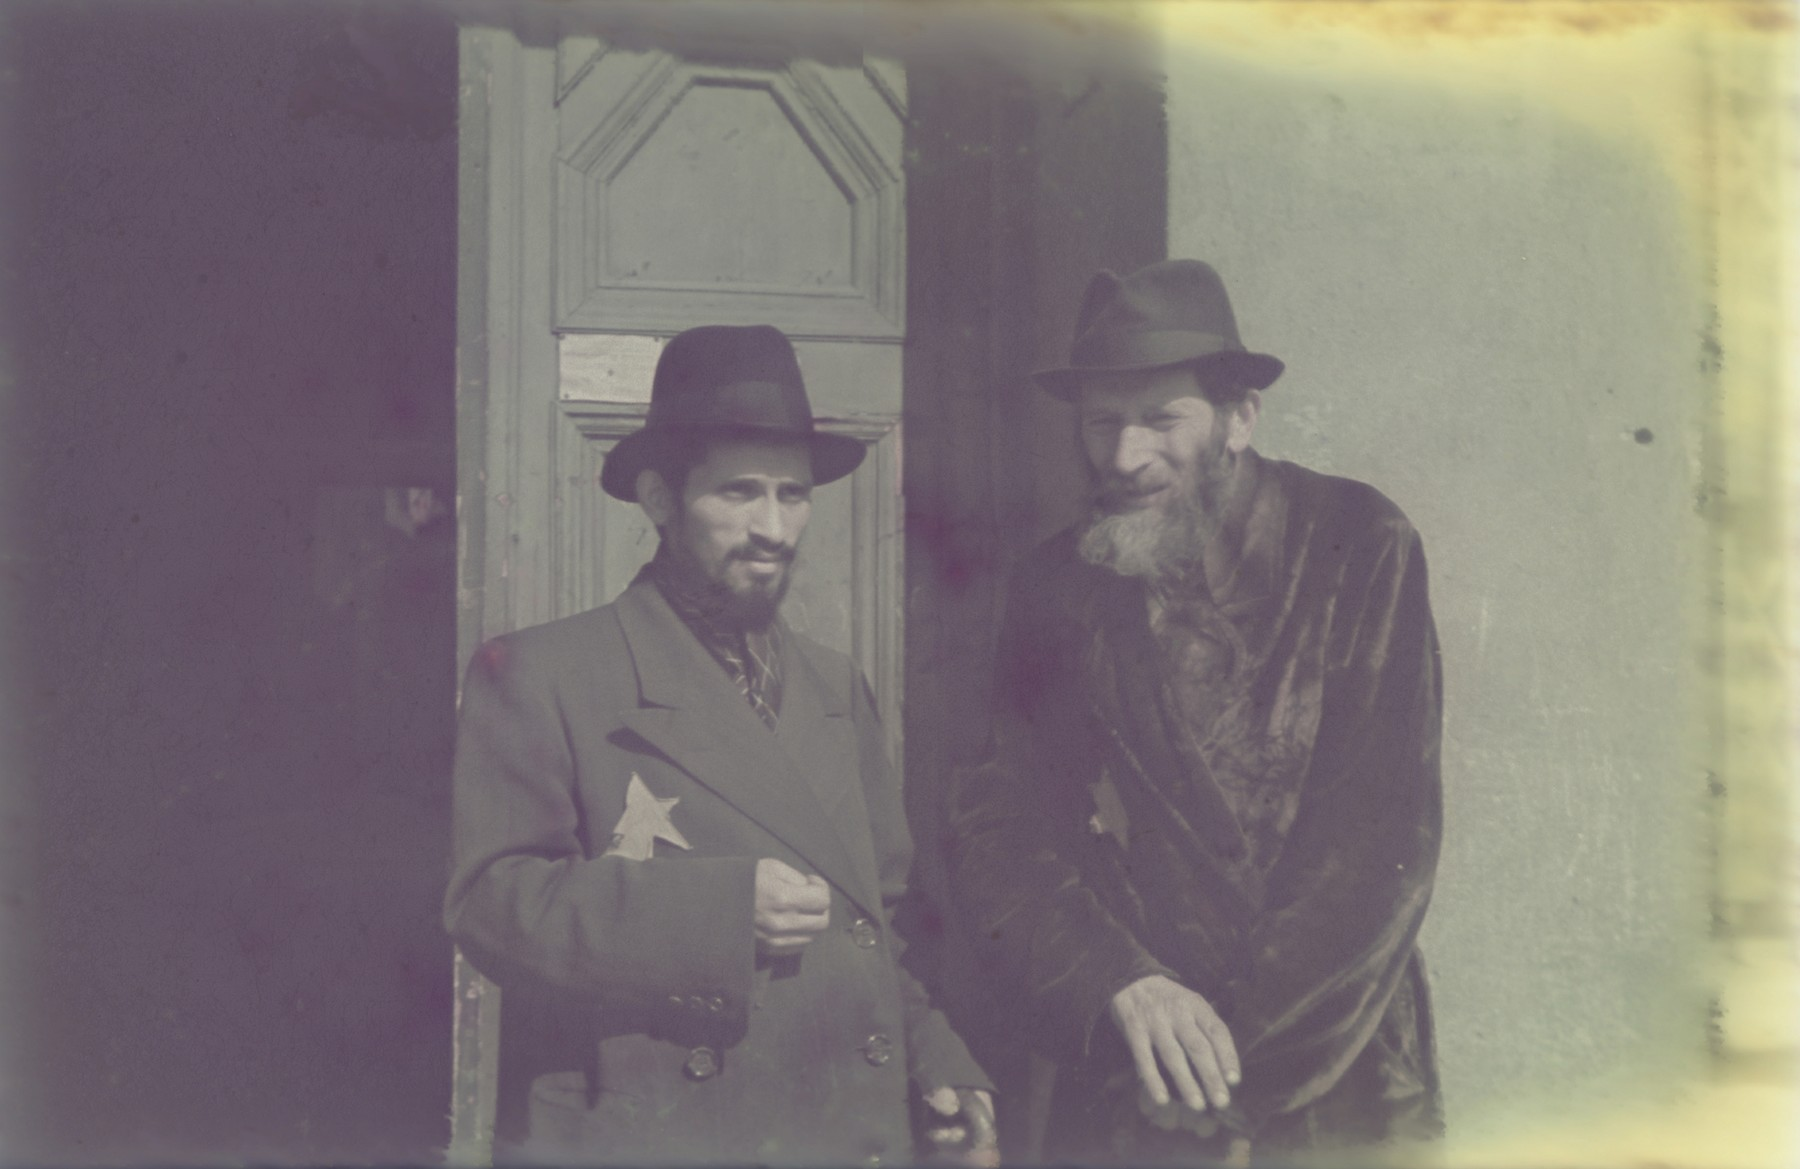 Portrait of two bearded Jewish men in the Lodz ghetto.